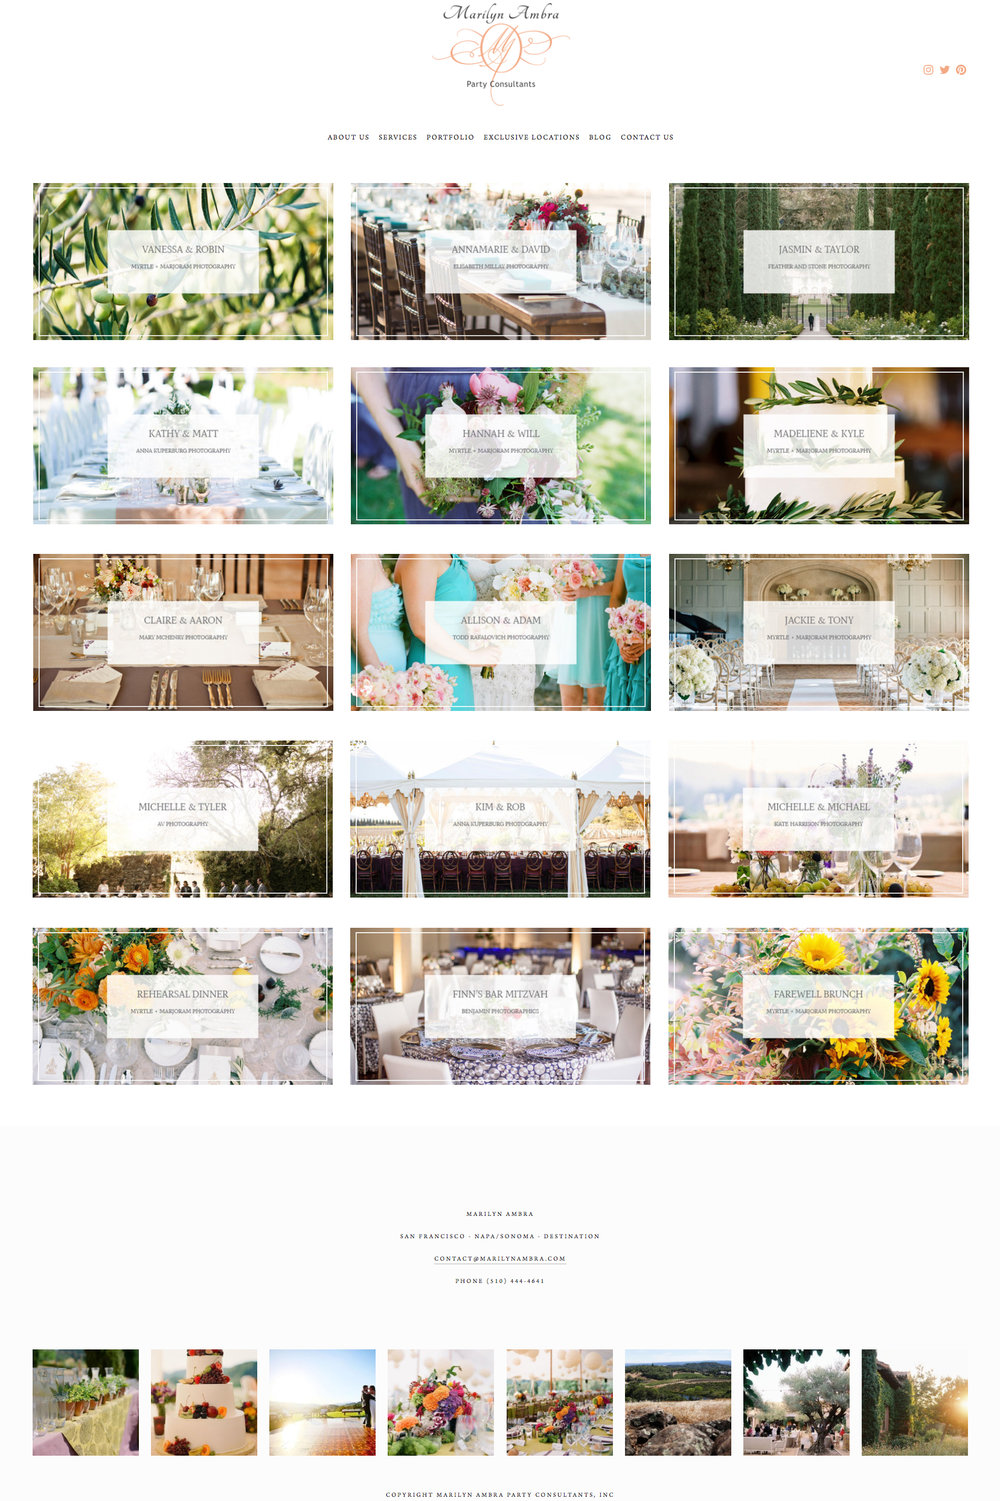 Marilyn Ambra Party Consultants in Napa California | Website Design by The Editor's Touch